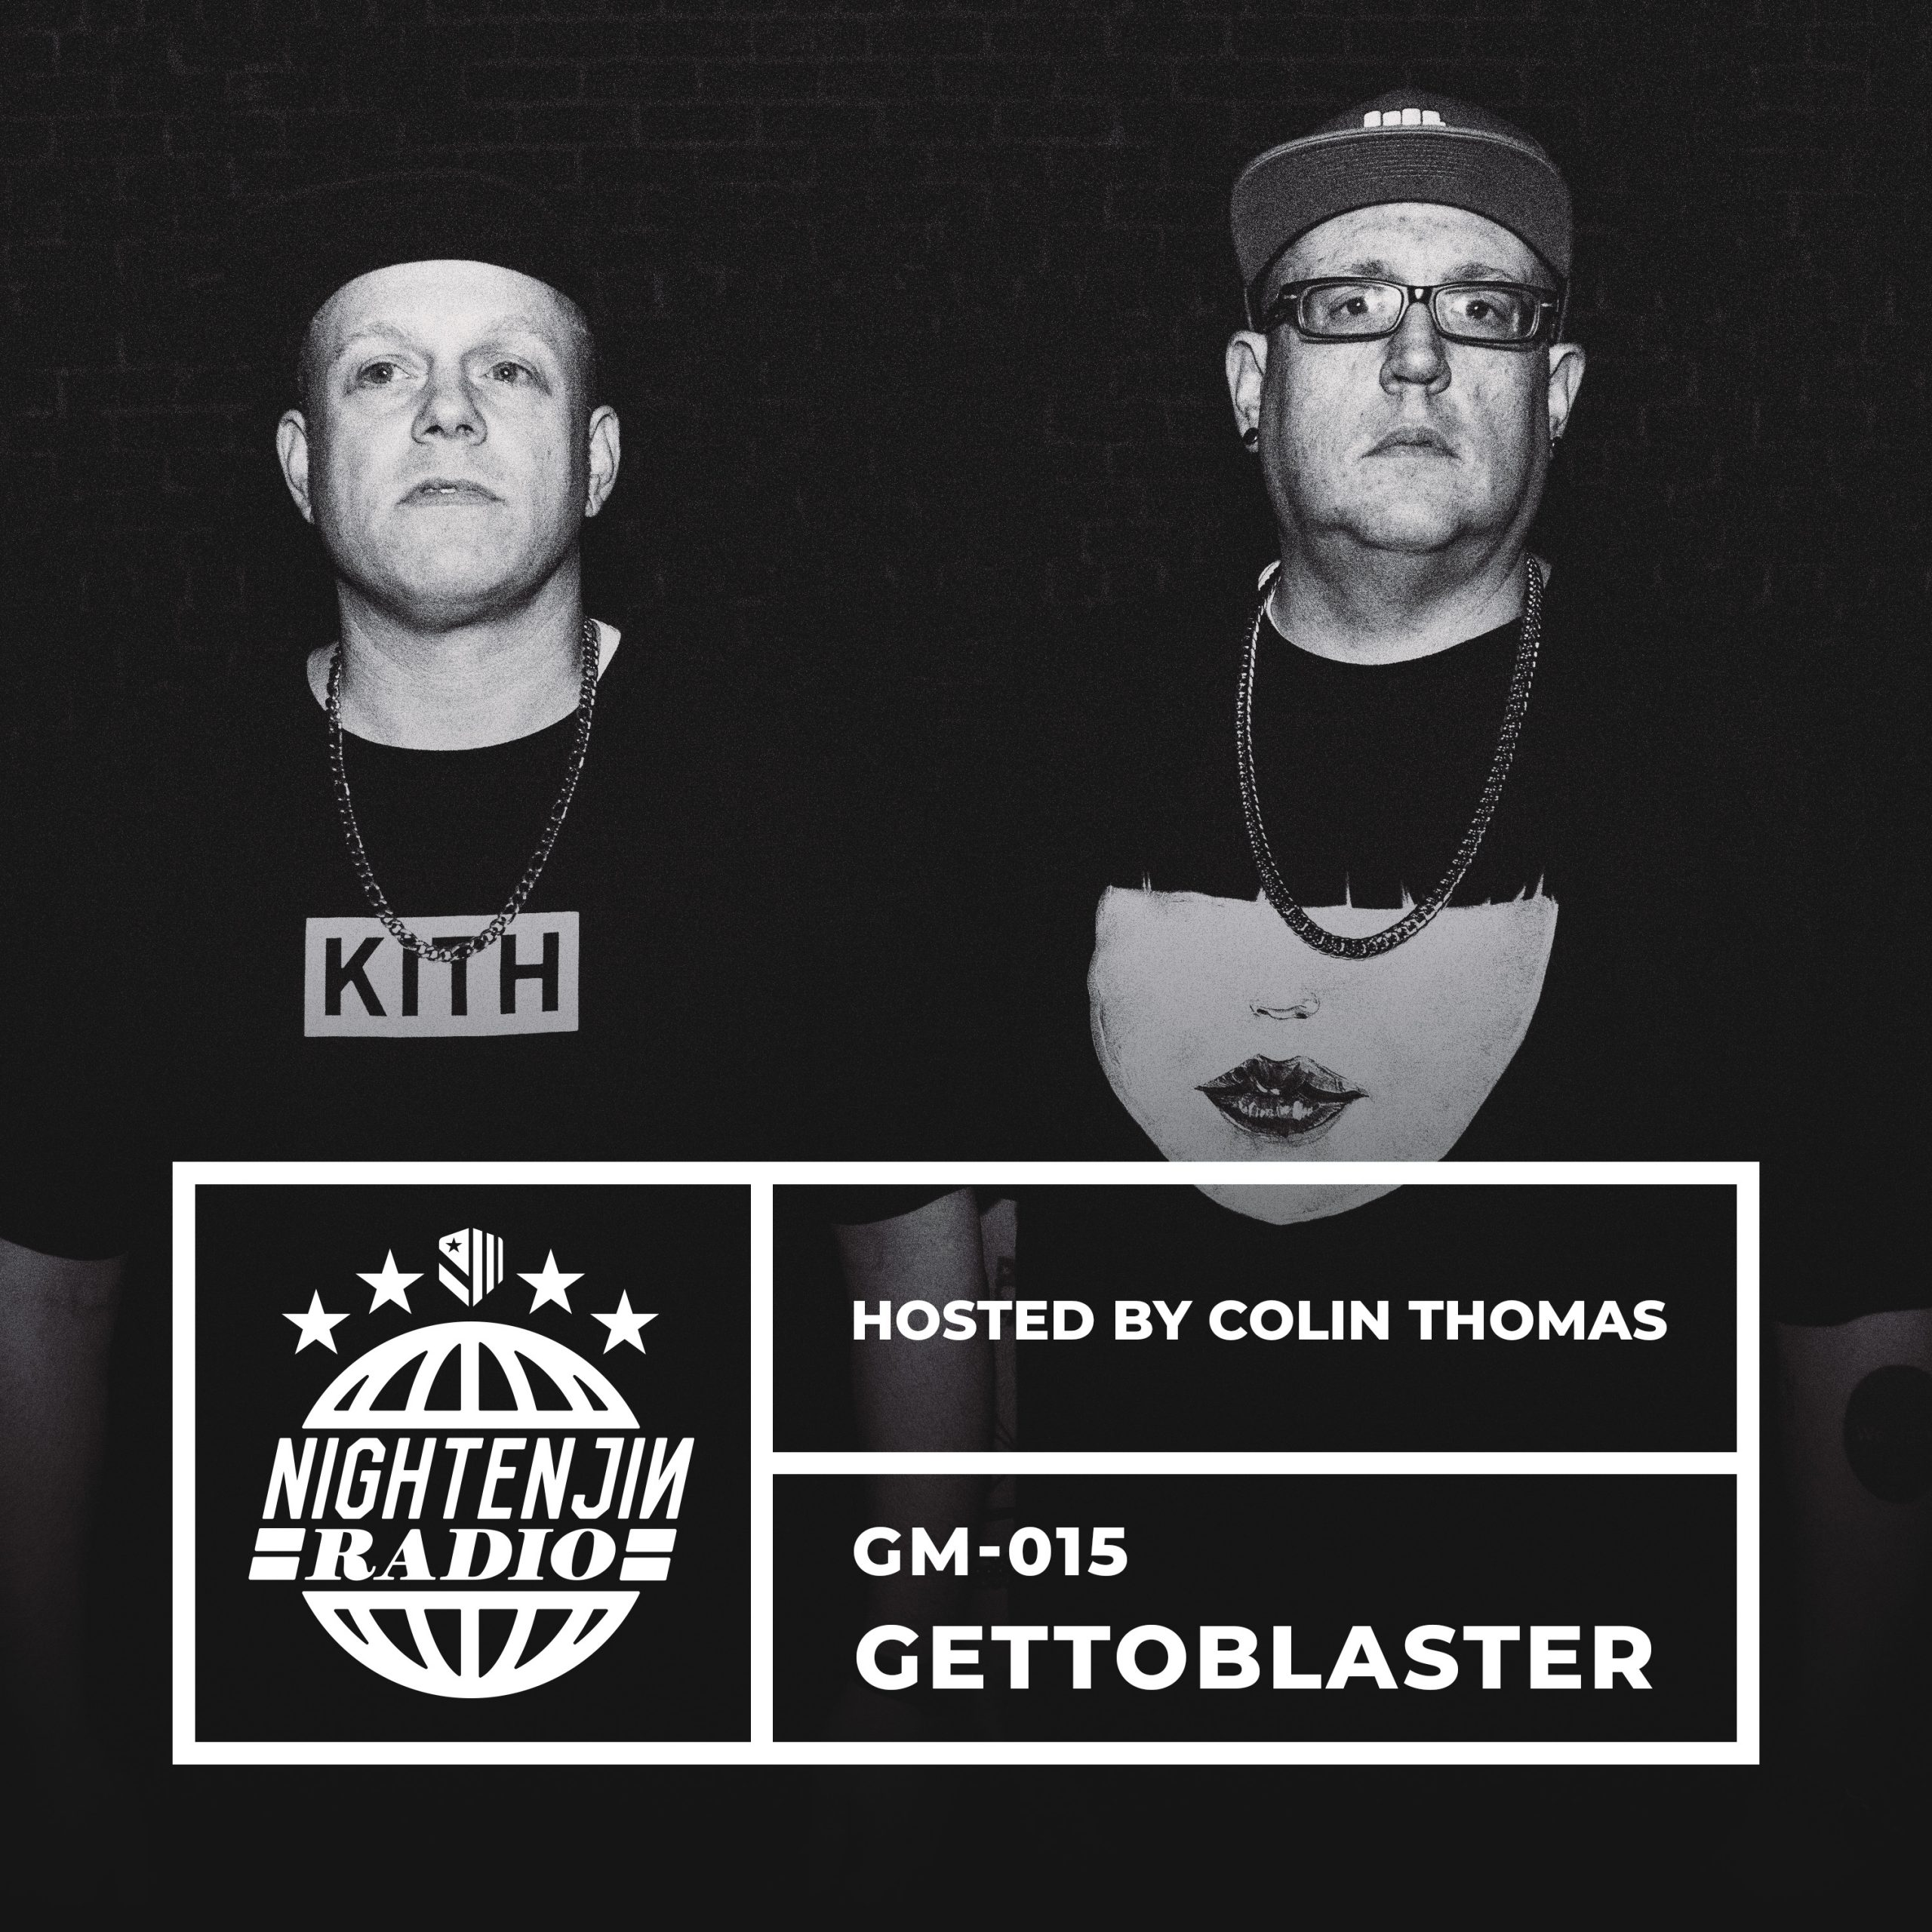 GM-015: Gettoblaster | Nightenjin Radio [Hosted by Colin Thomas]